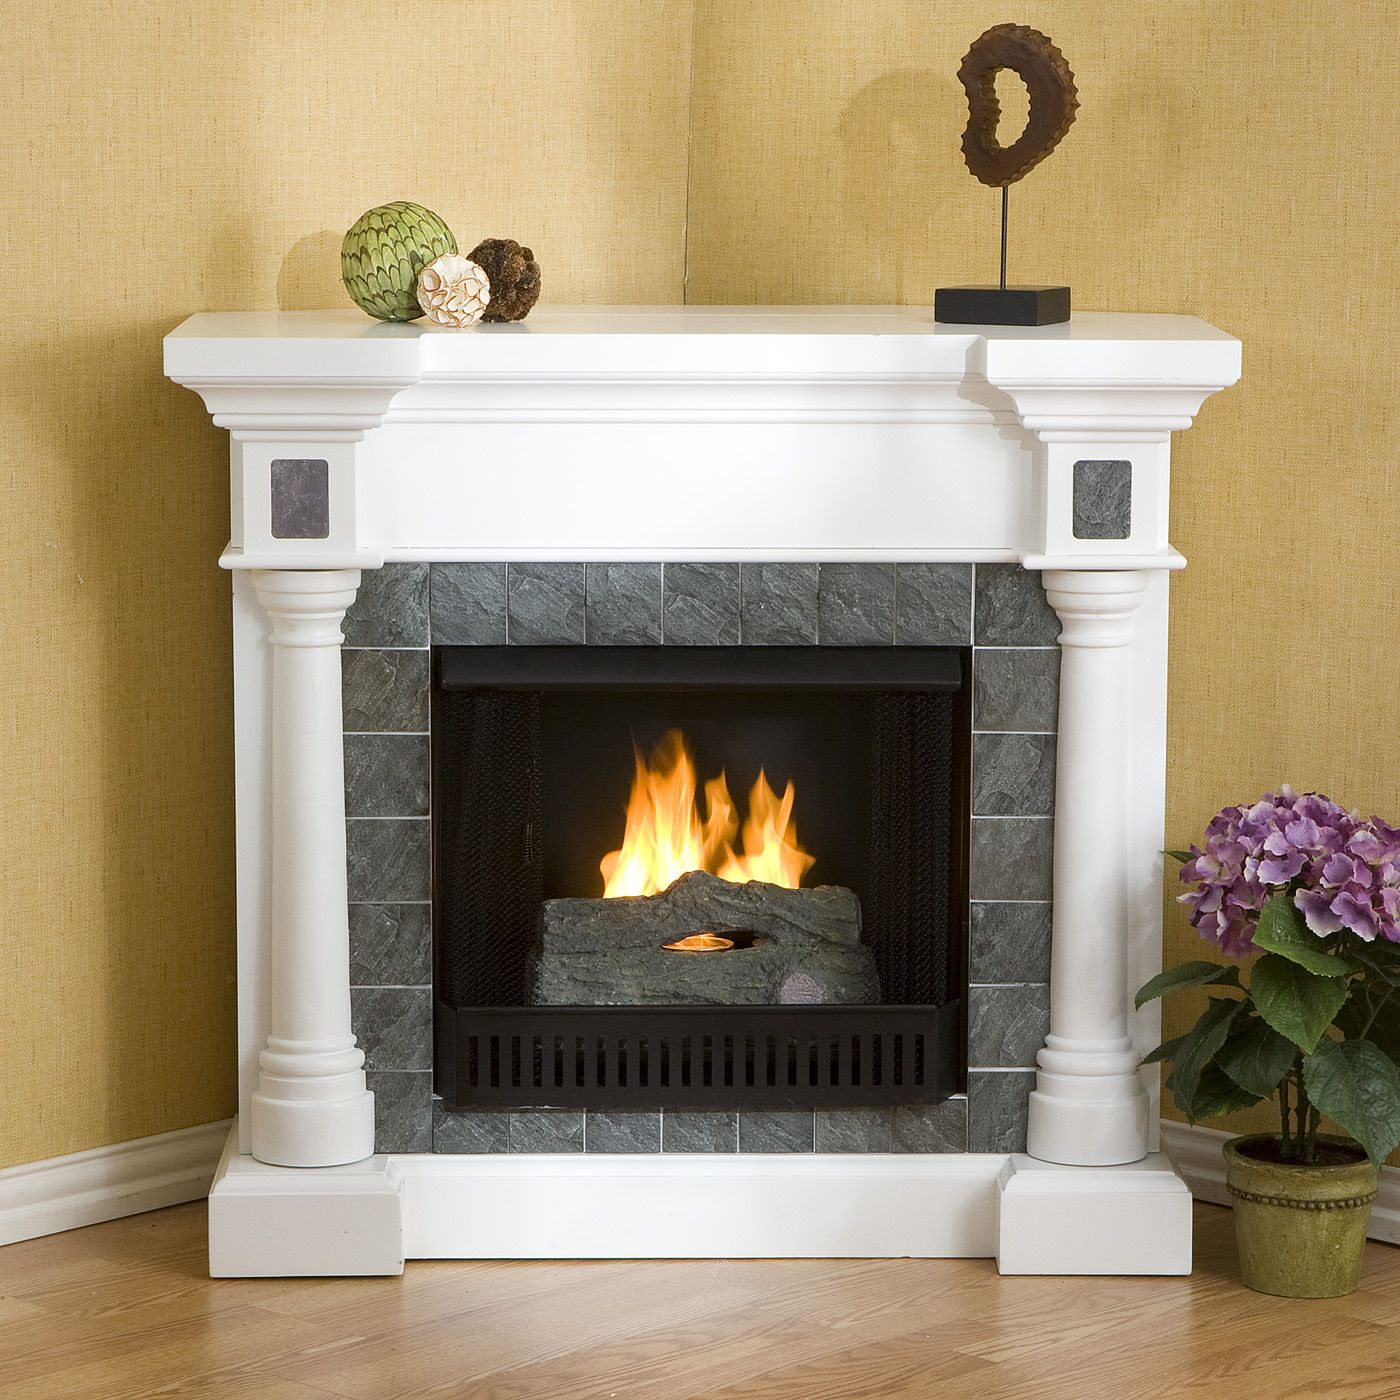 Fashionable Modern Outdoor Fireplaces Designs Decorative Fireplace Fireplaces Pinterest